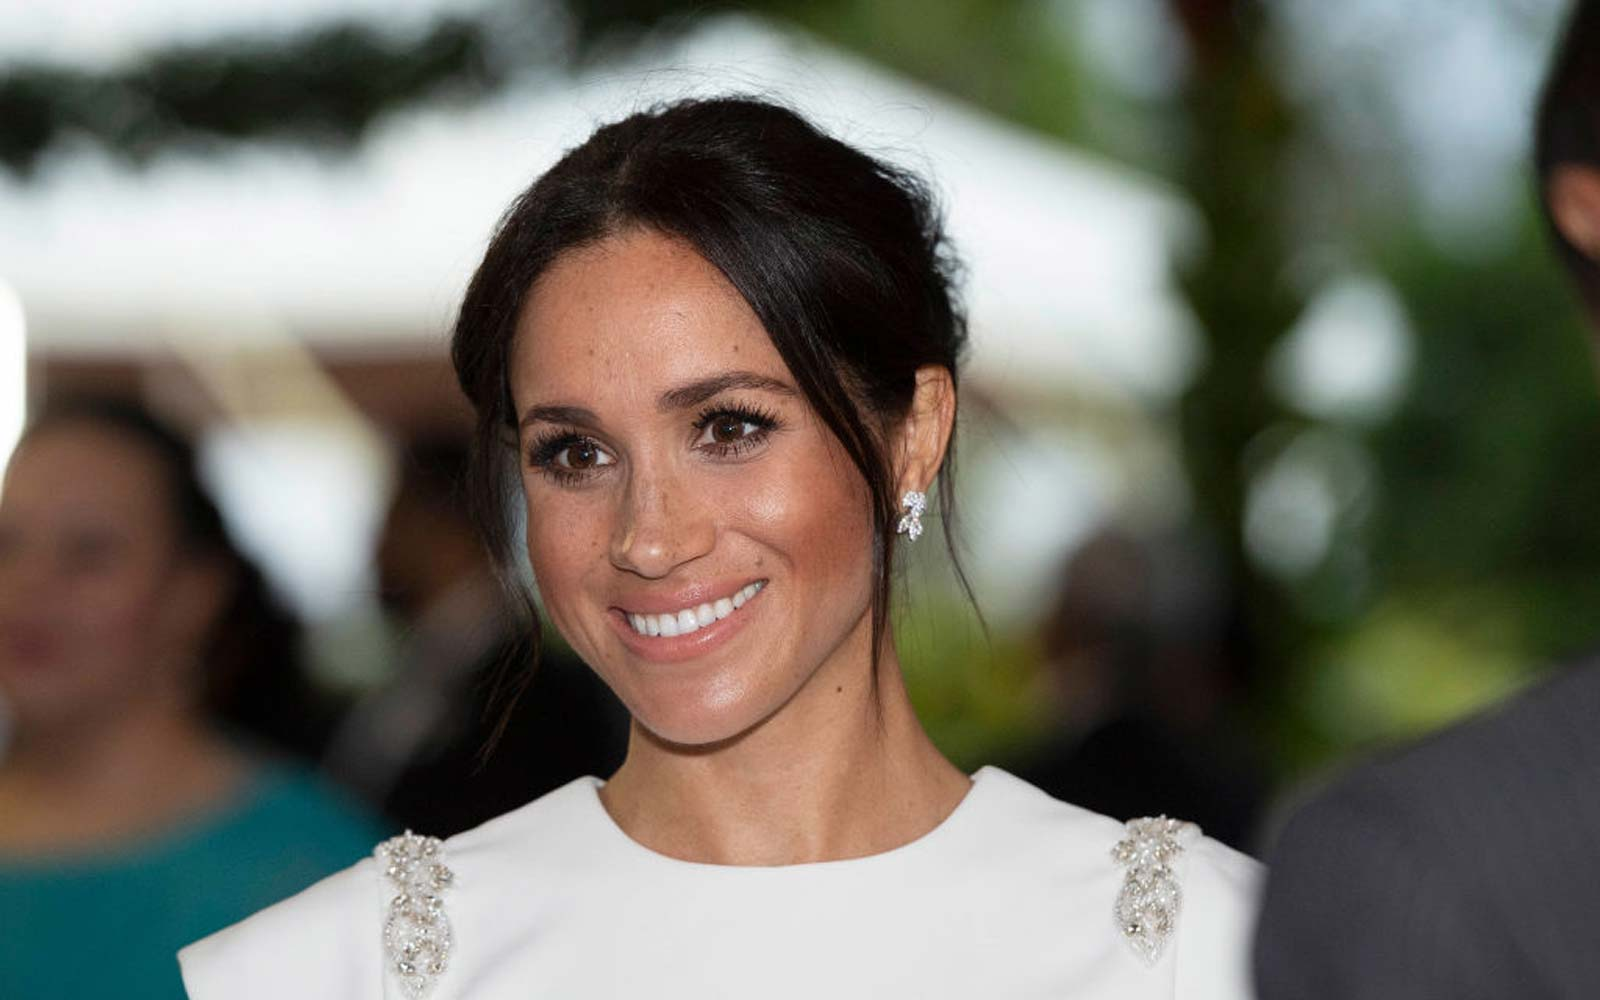 Meghan Markle Just Got the Layered Haircut You've Always Wanted